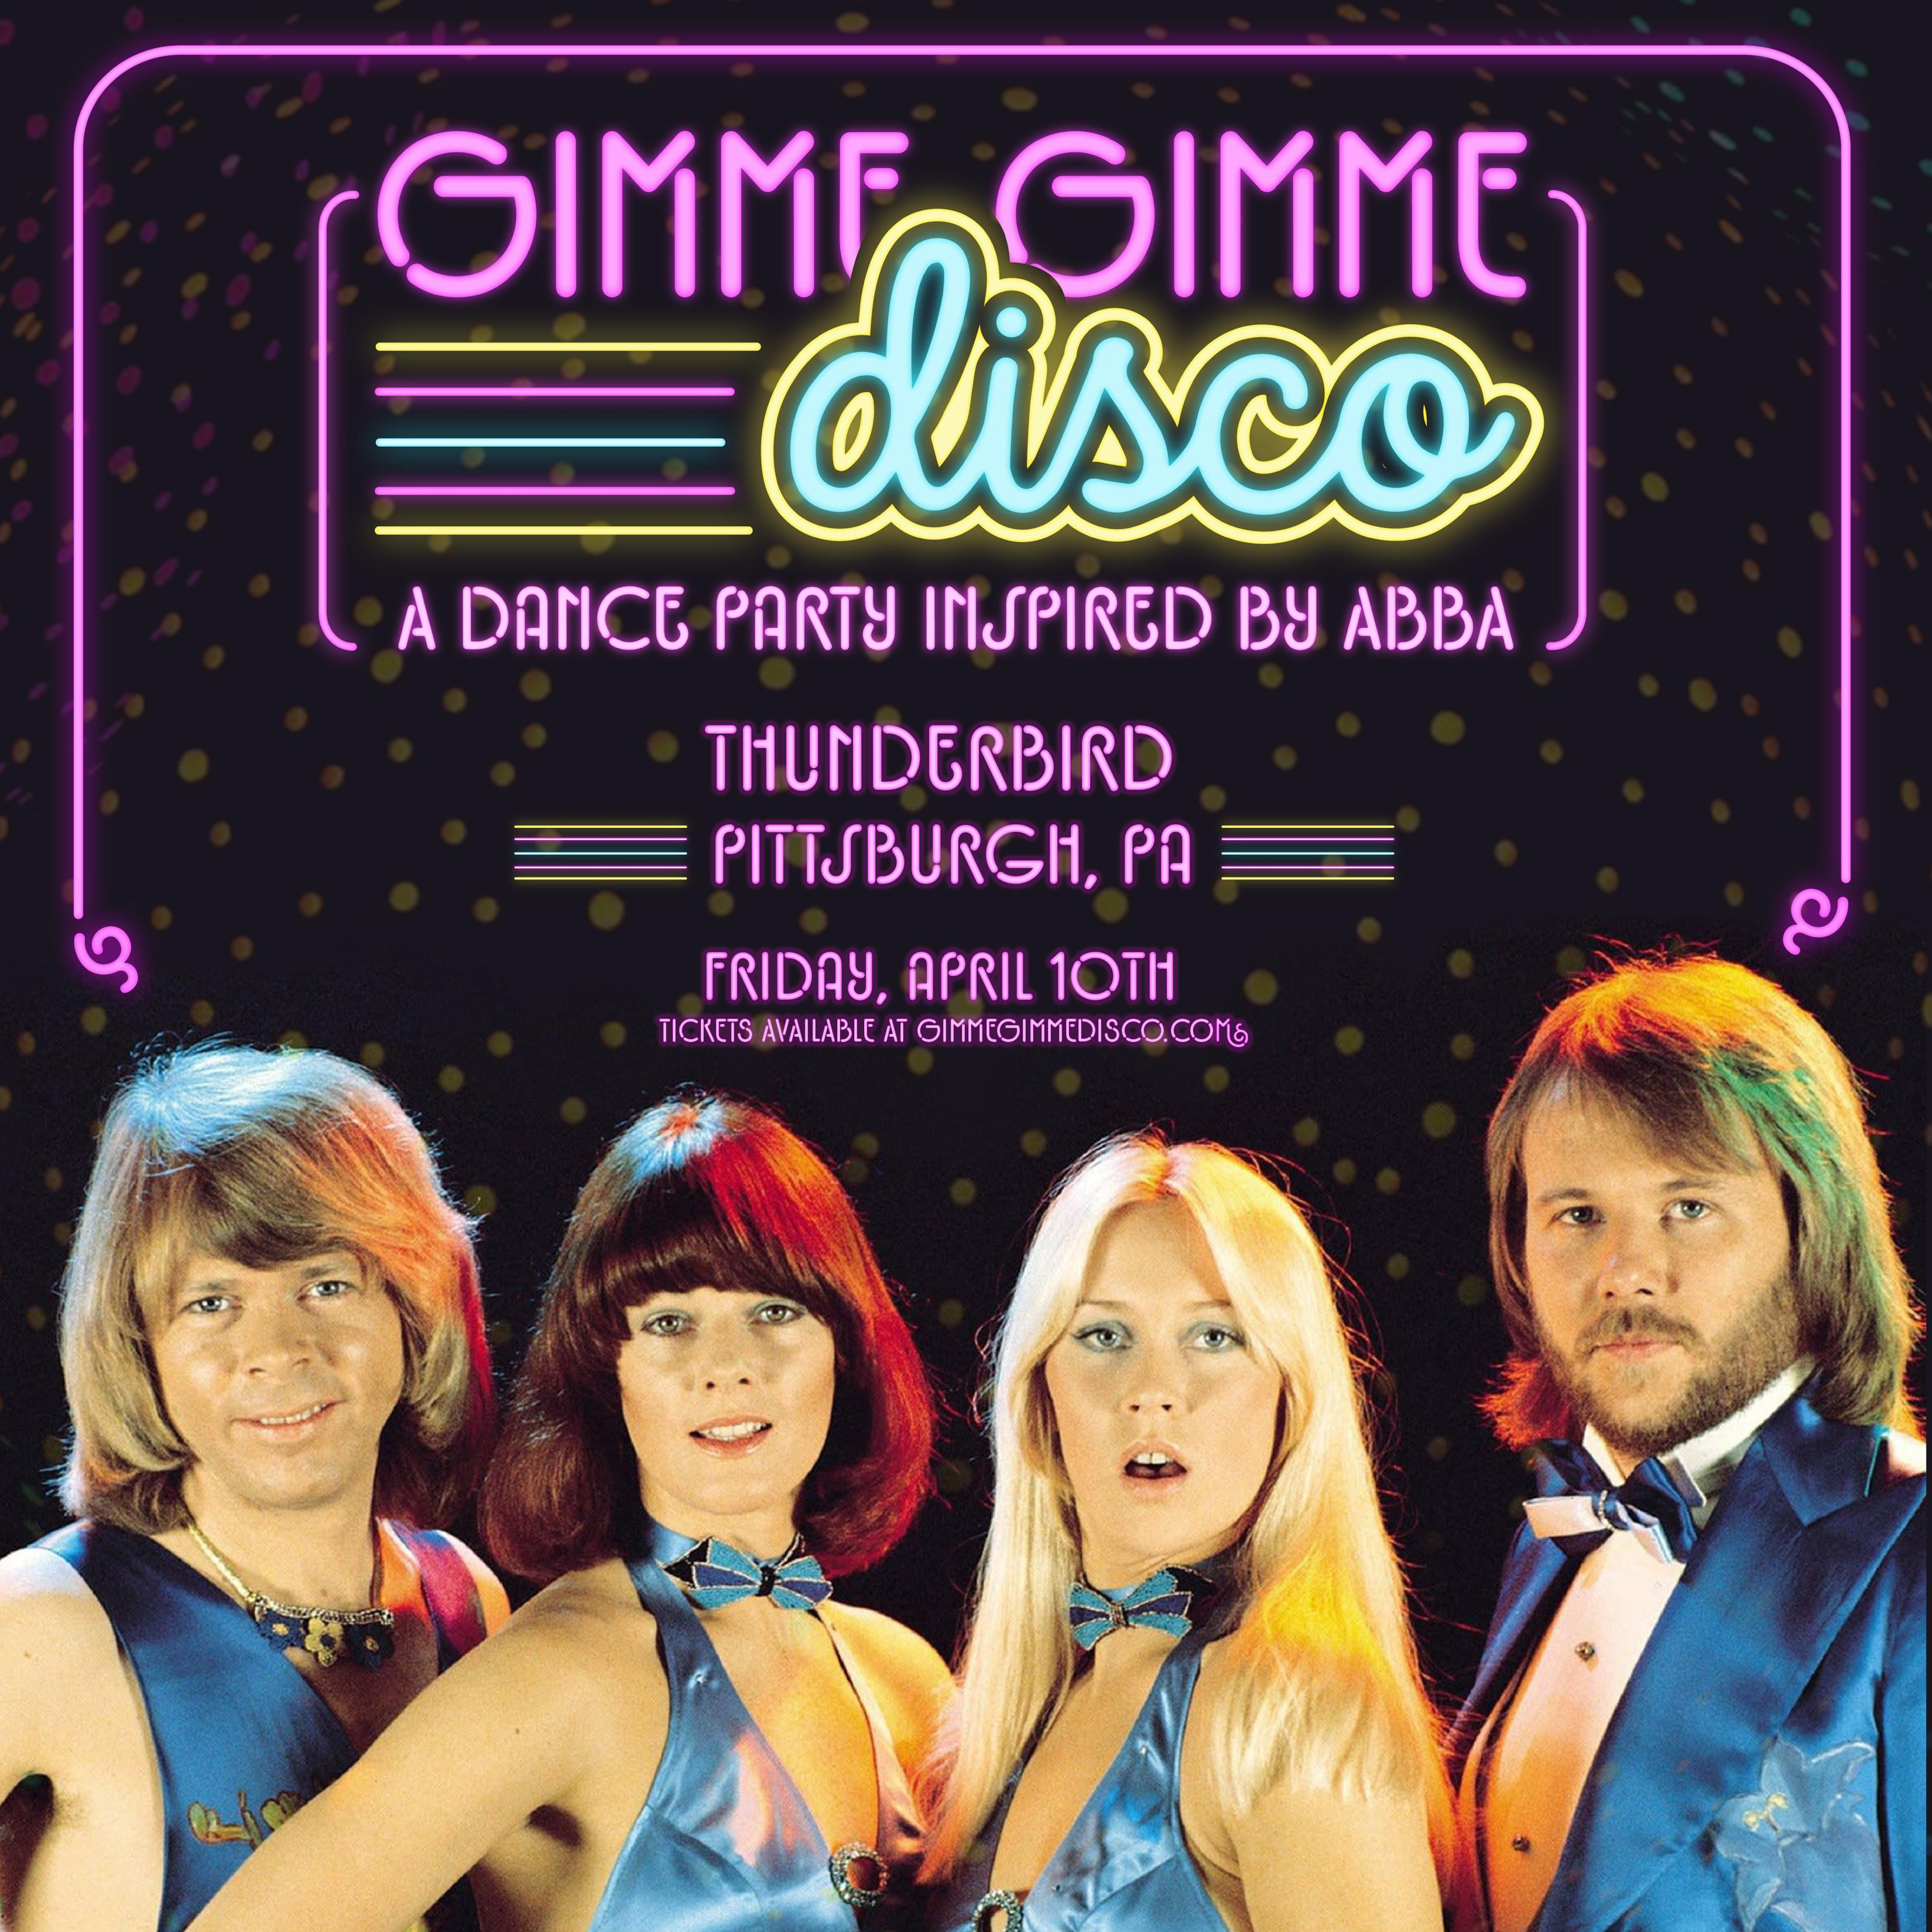 Halloween Parties In Pittsburgh 2020 Gimme Gimme Disco   A 70's Disco Halloween Party   31 OCT 2020